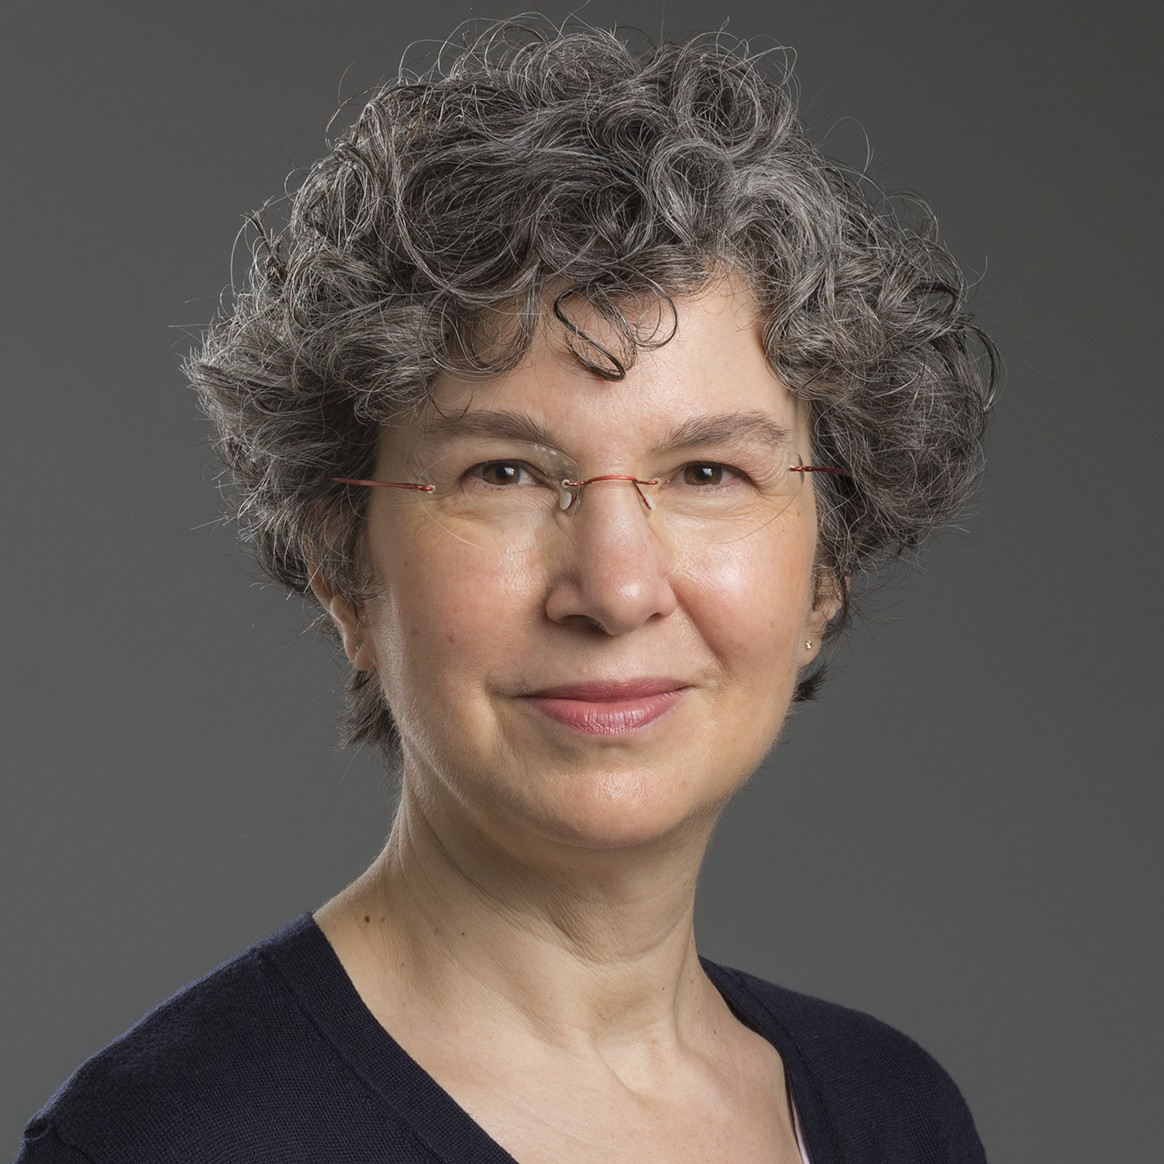 Headshot of Penn State Associate Professor of Art History Nancy Locke